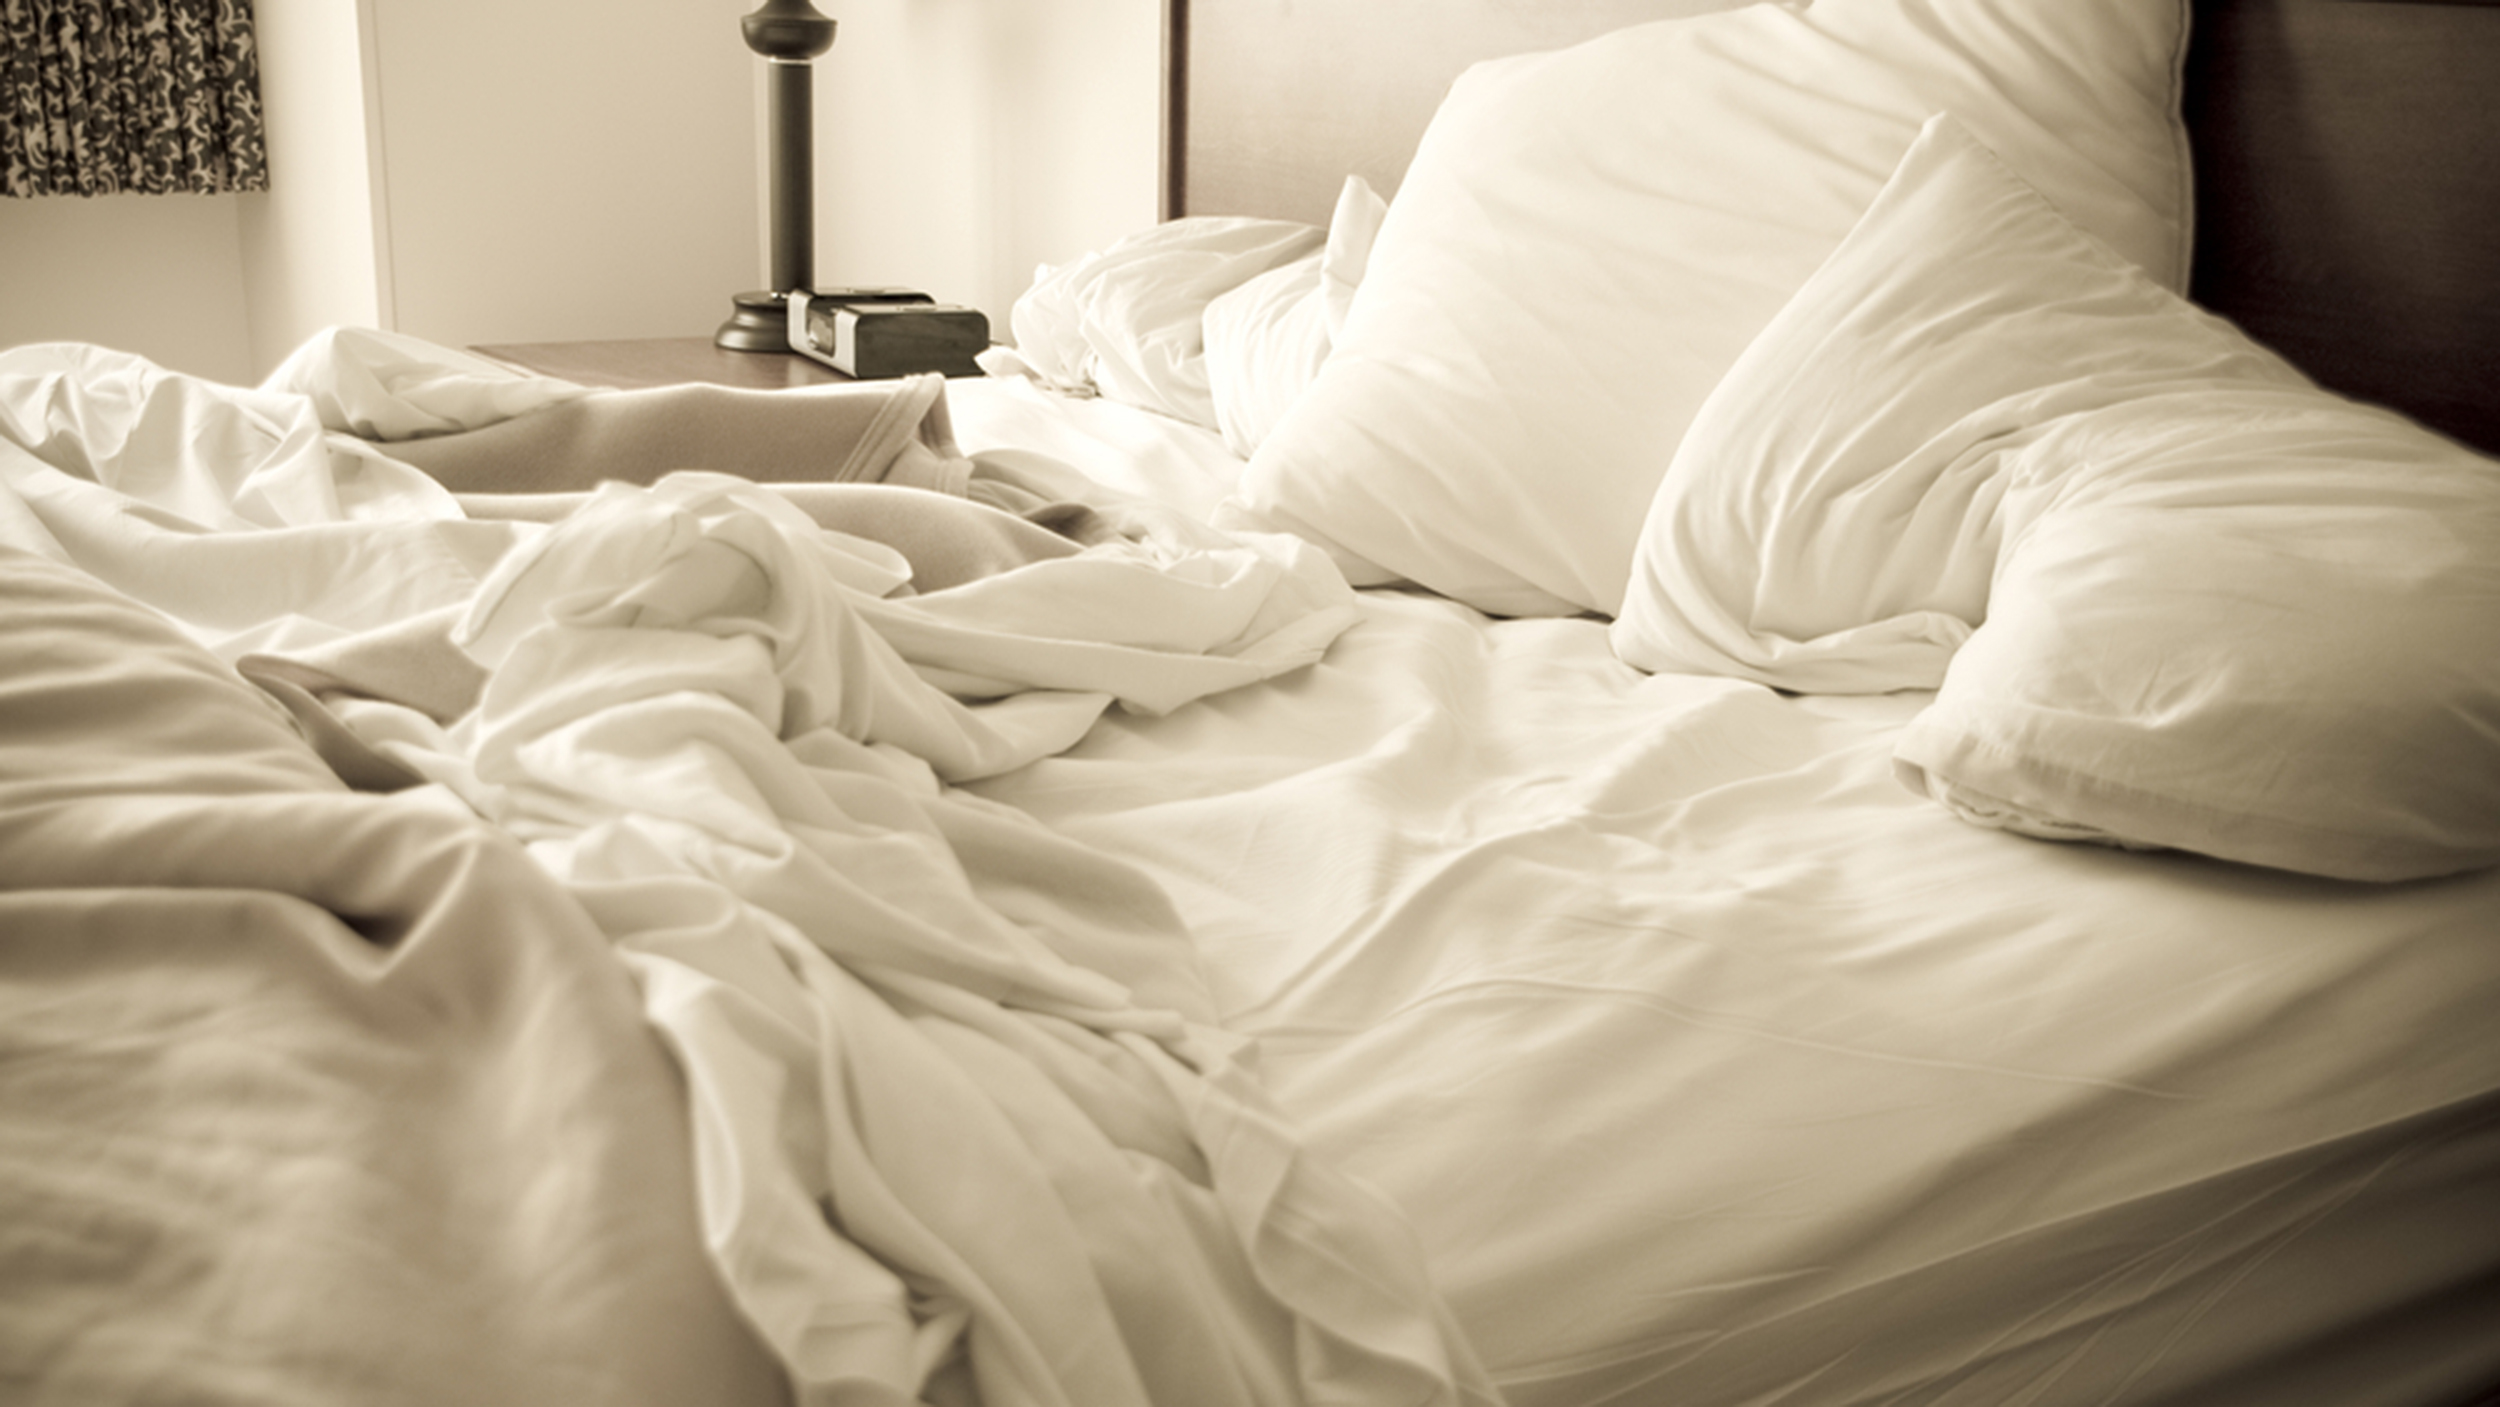 Photo of Top 40 Places Where You Can Buy The Best Mattresses That Will Give You The Most Comfortable Sleep